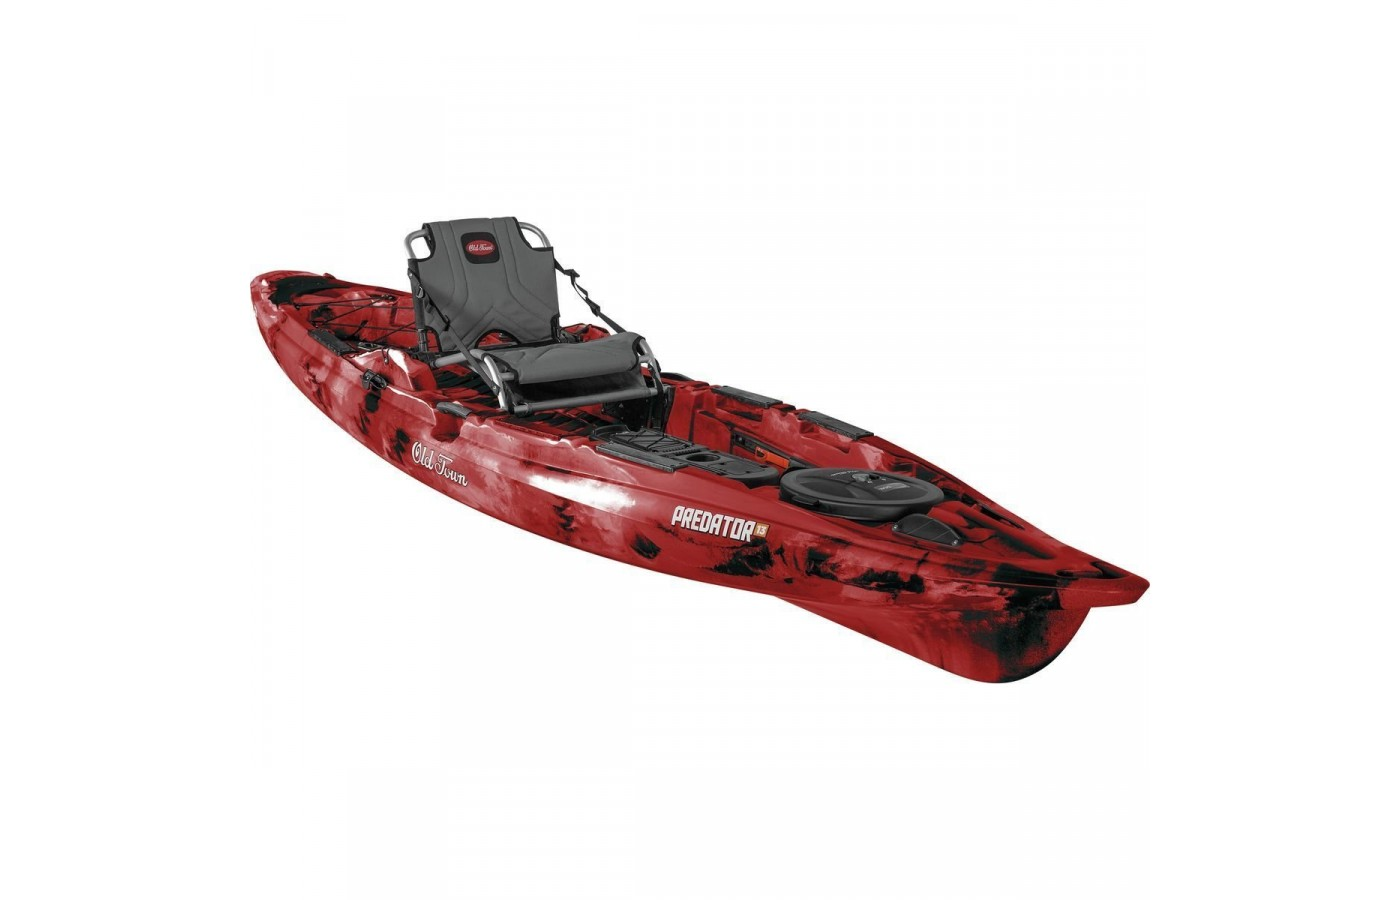 The Old Town Predator 13 is well-outfitted and well-designed.